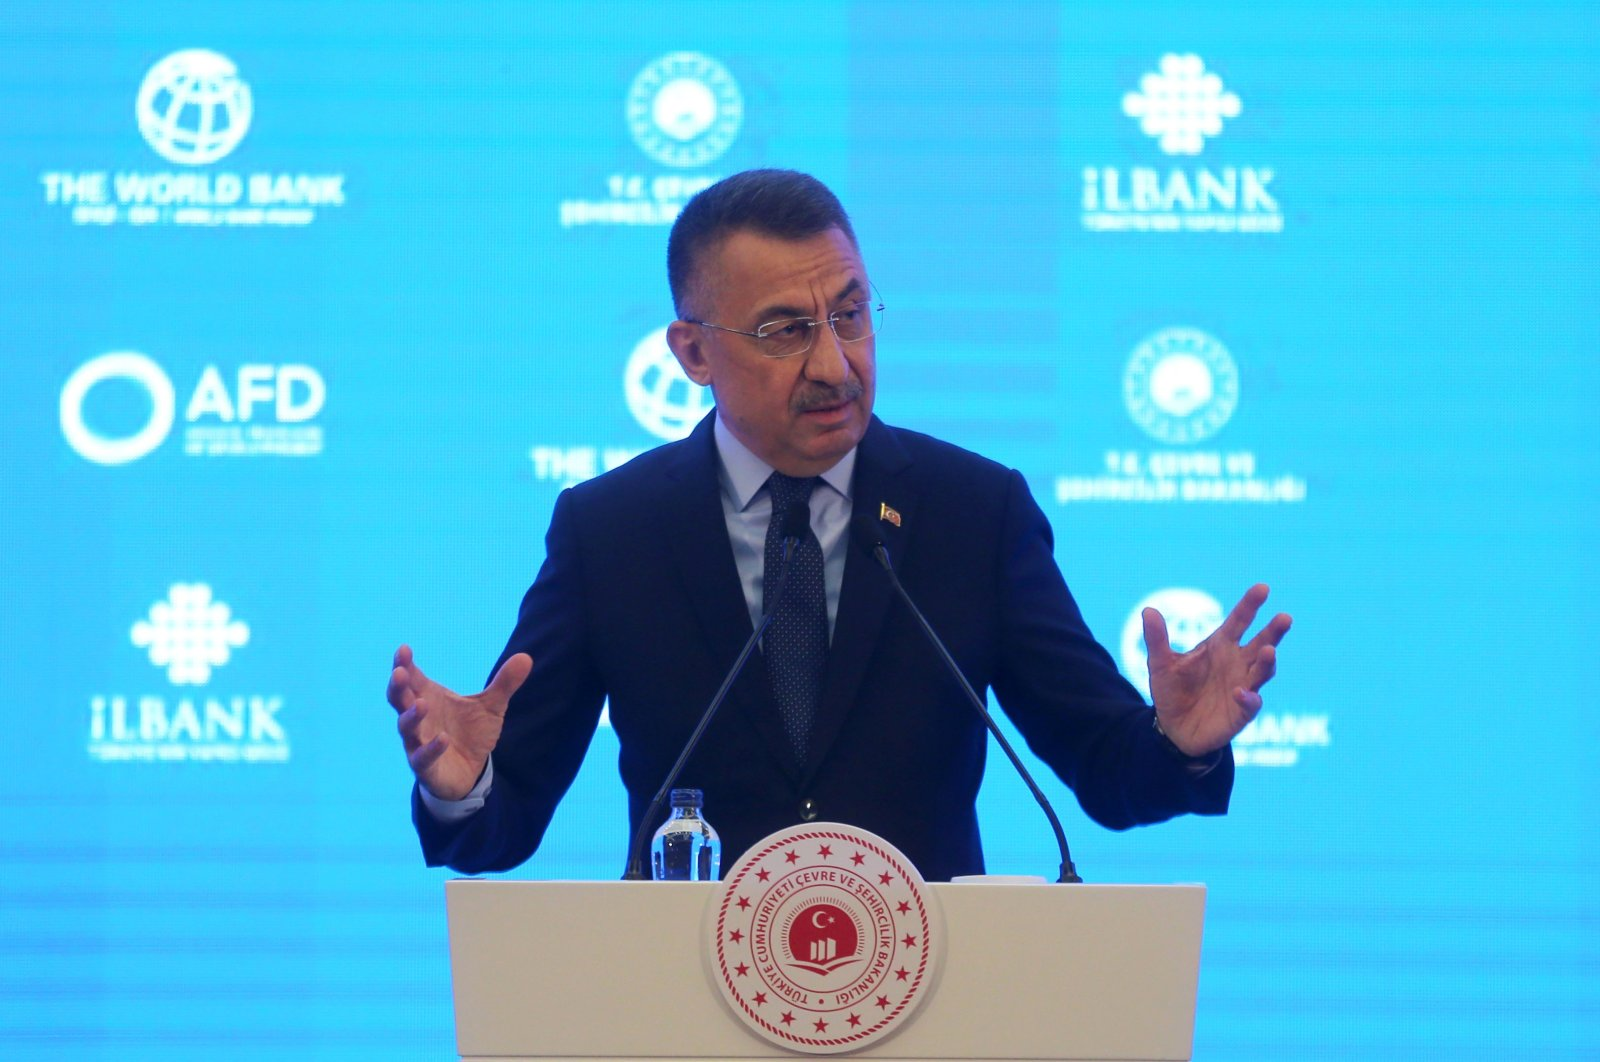 Vice President Fuat Oktay attends a financial agreement signing ceremony within the scope of the EU's financial assistance program for refugees in Turkey, held at the ATO Congressium in the capital, Ankara, Turkey, July 6, 2021. (AA Photo)